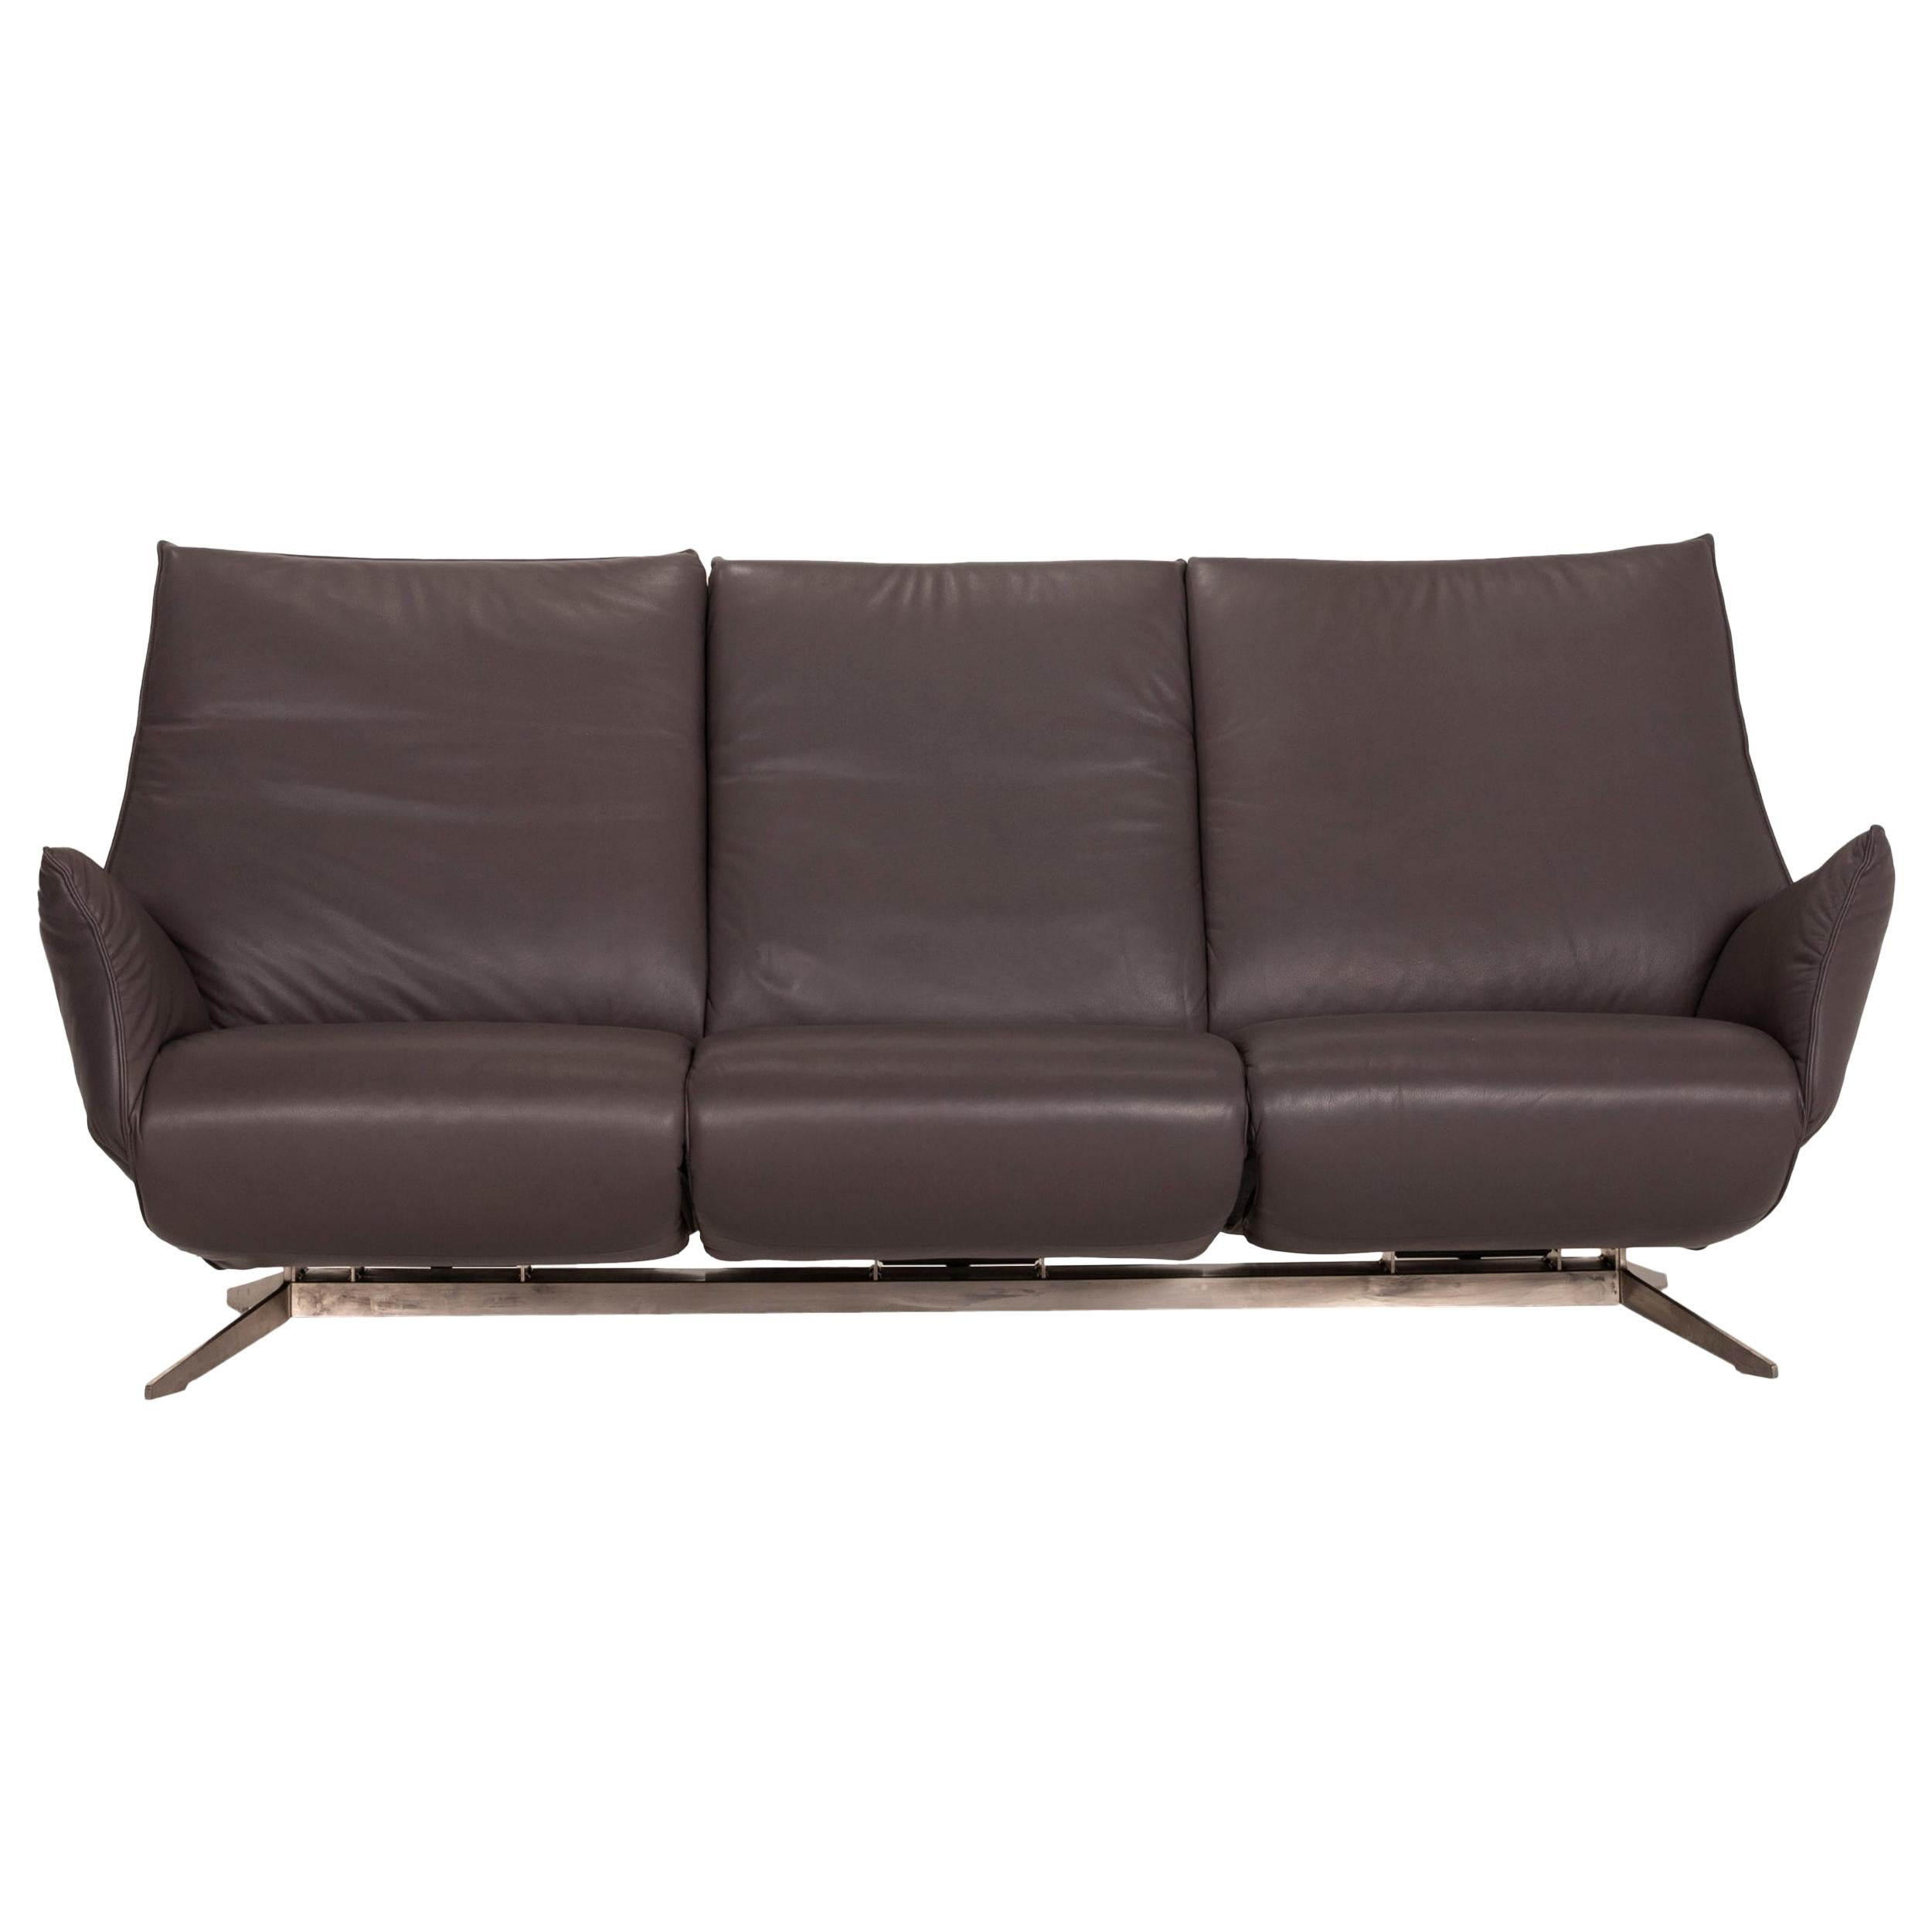 Koinor Evita Gray Three Seater Leather